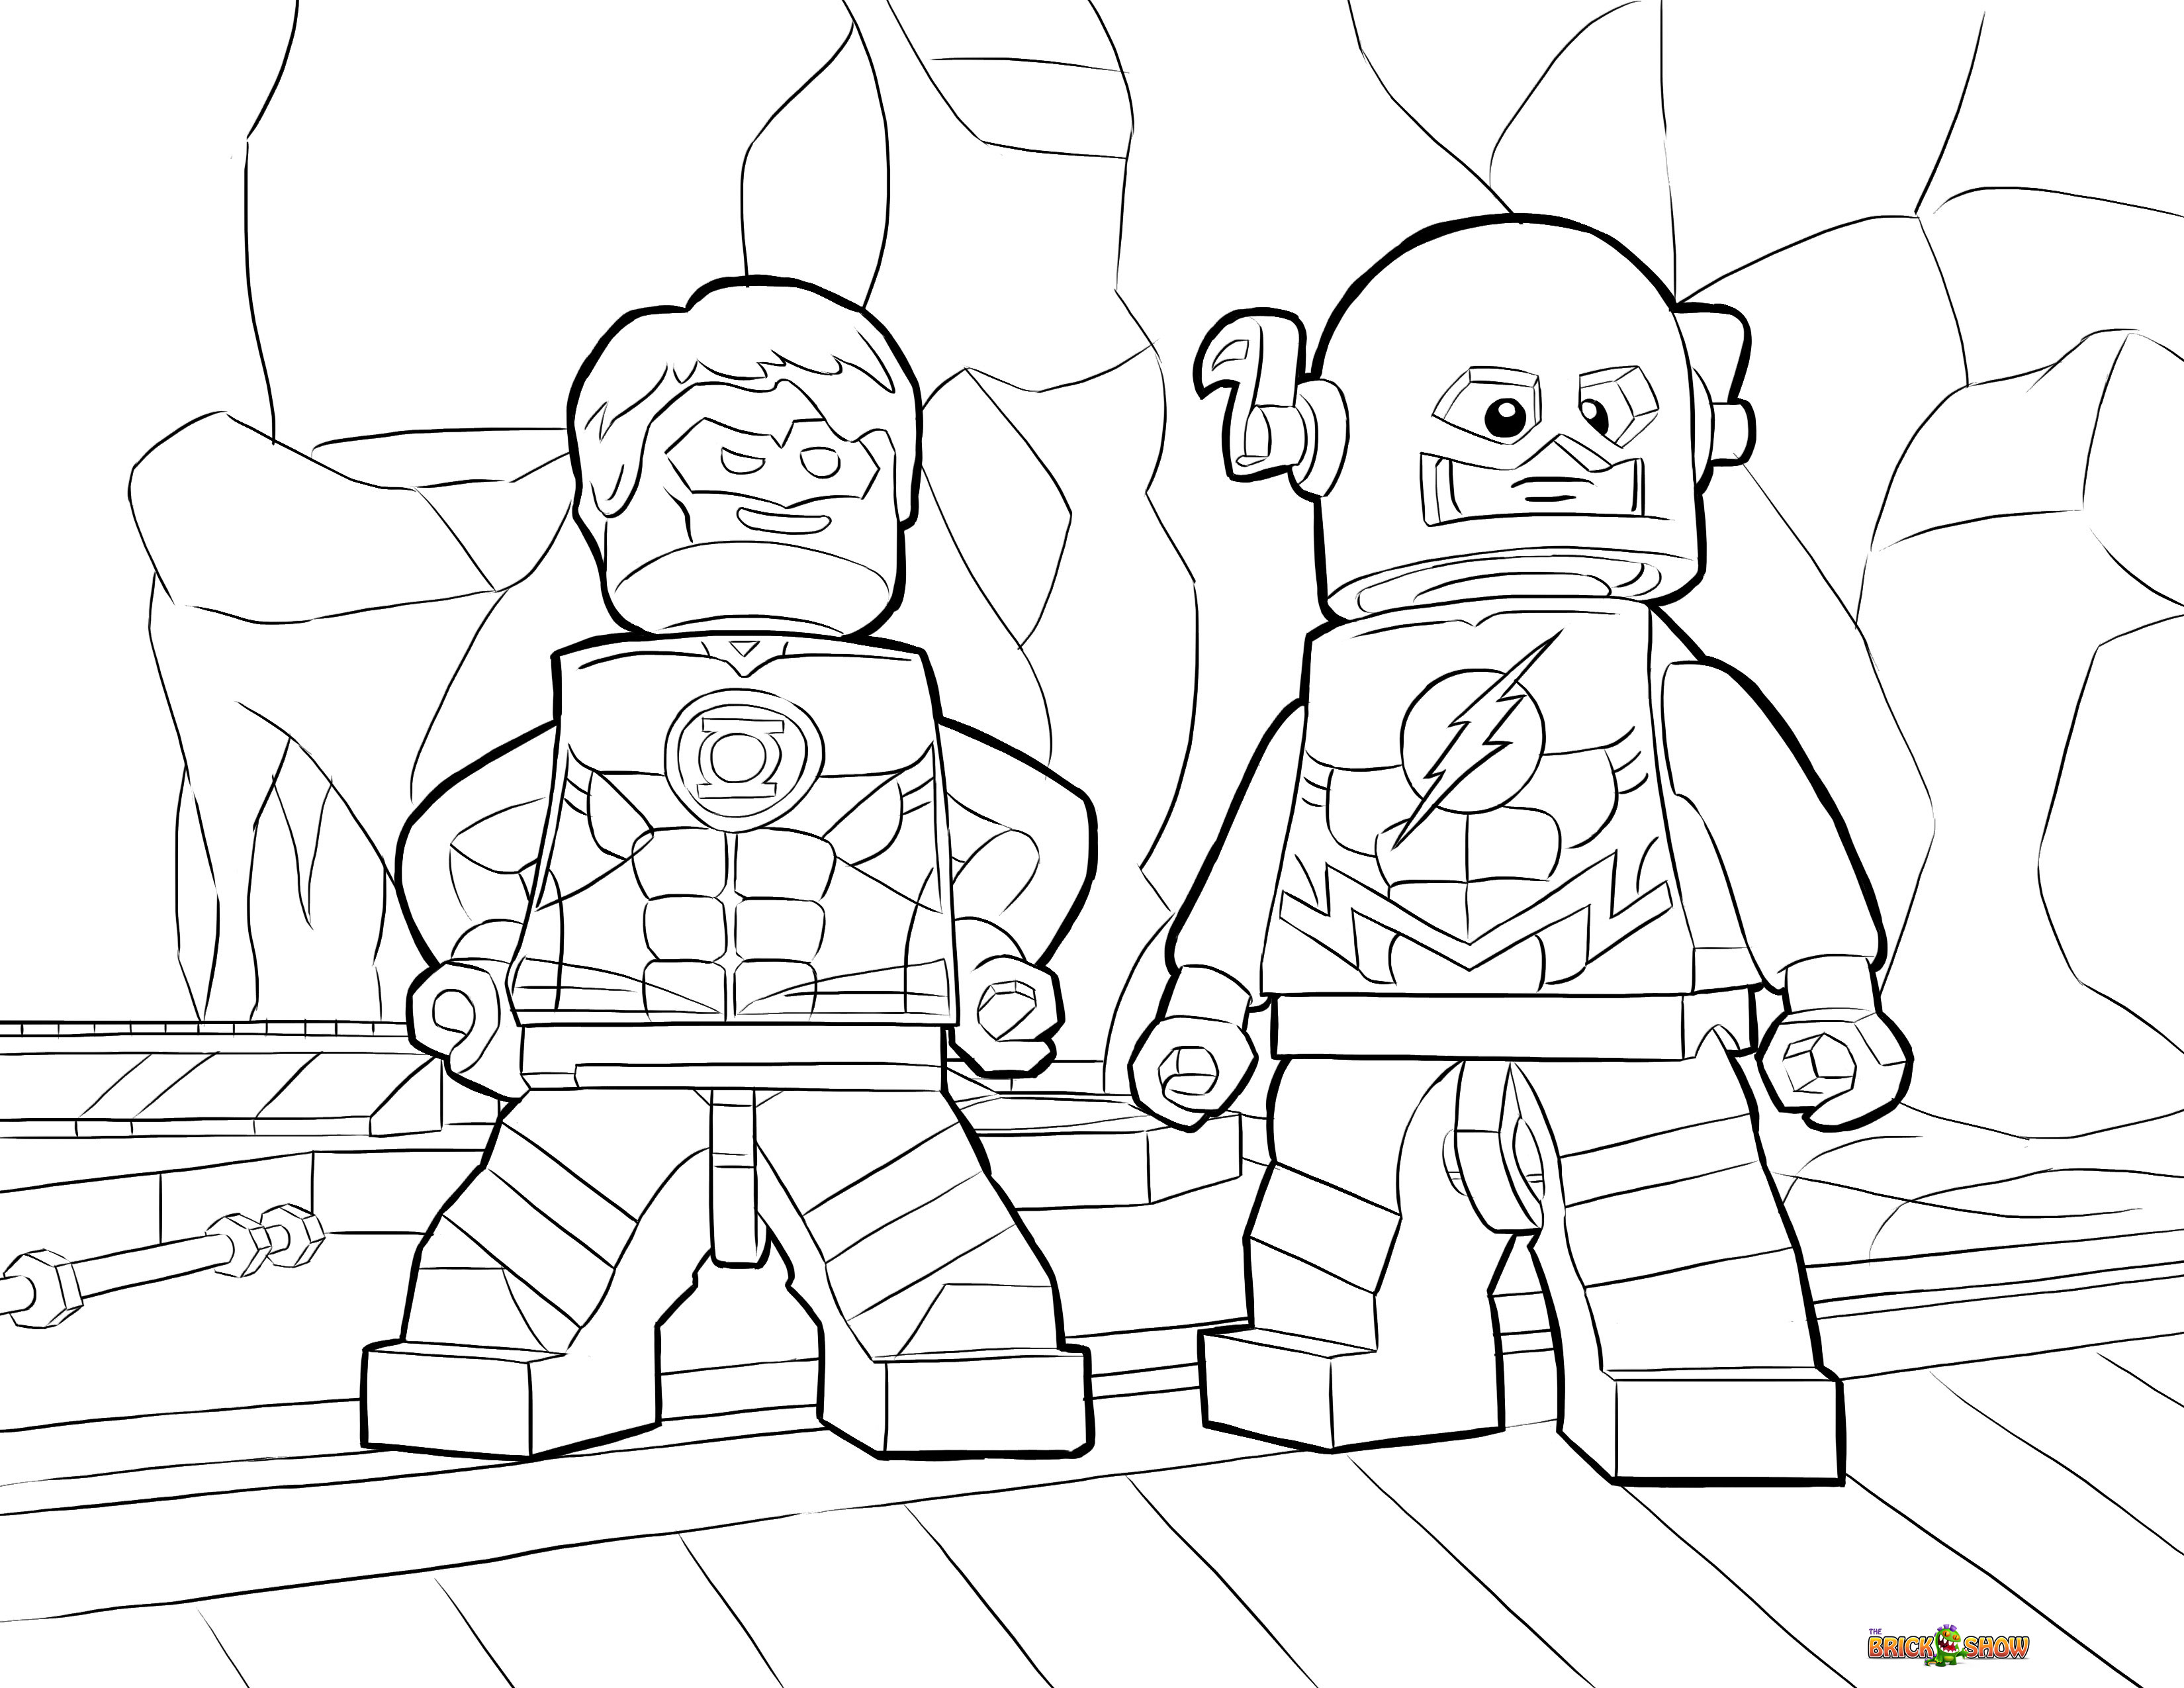 they also have coloring pages for other various lego themes as well